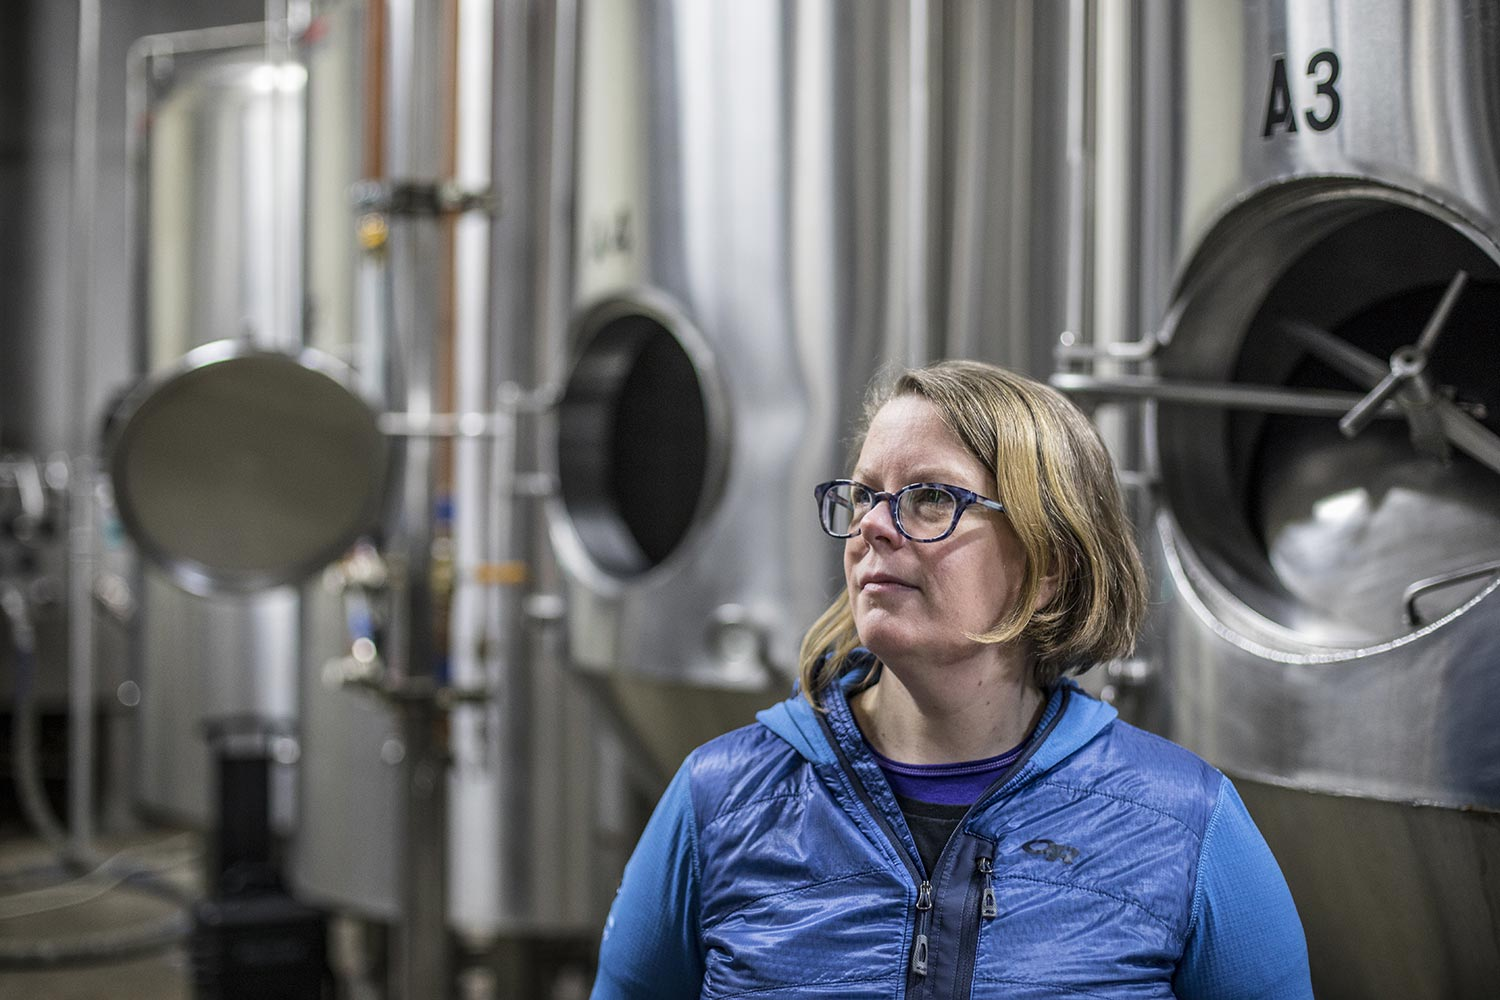 Lisa Ulrich standing by brewing vats